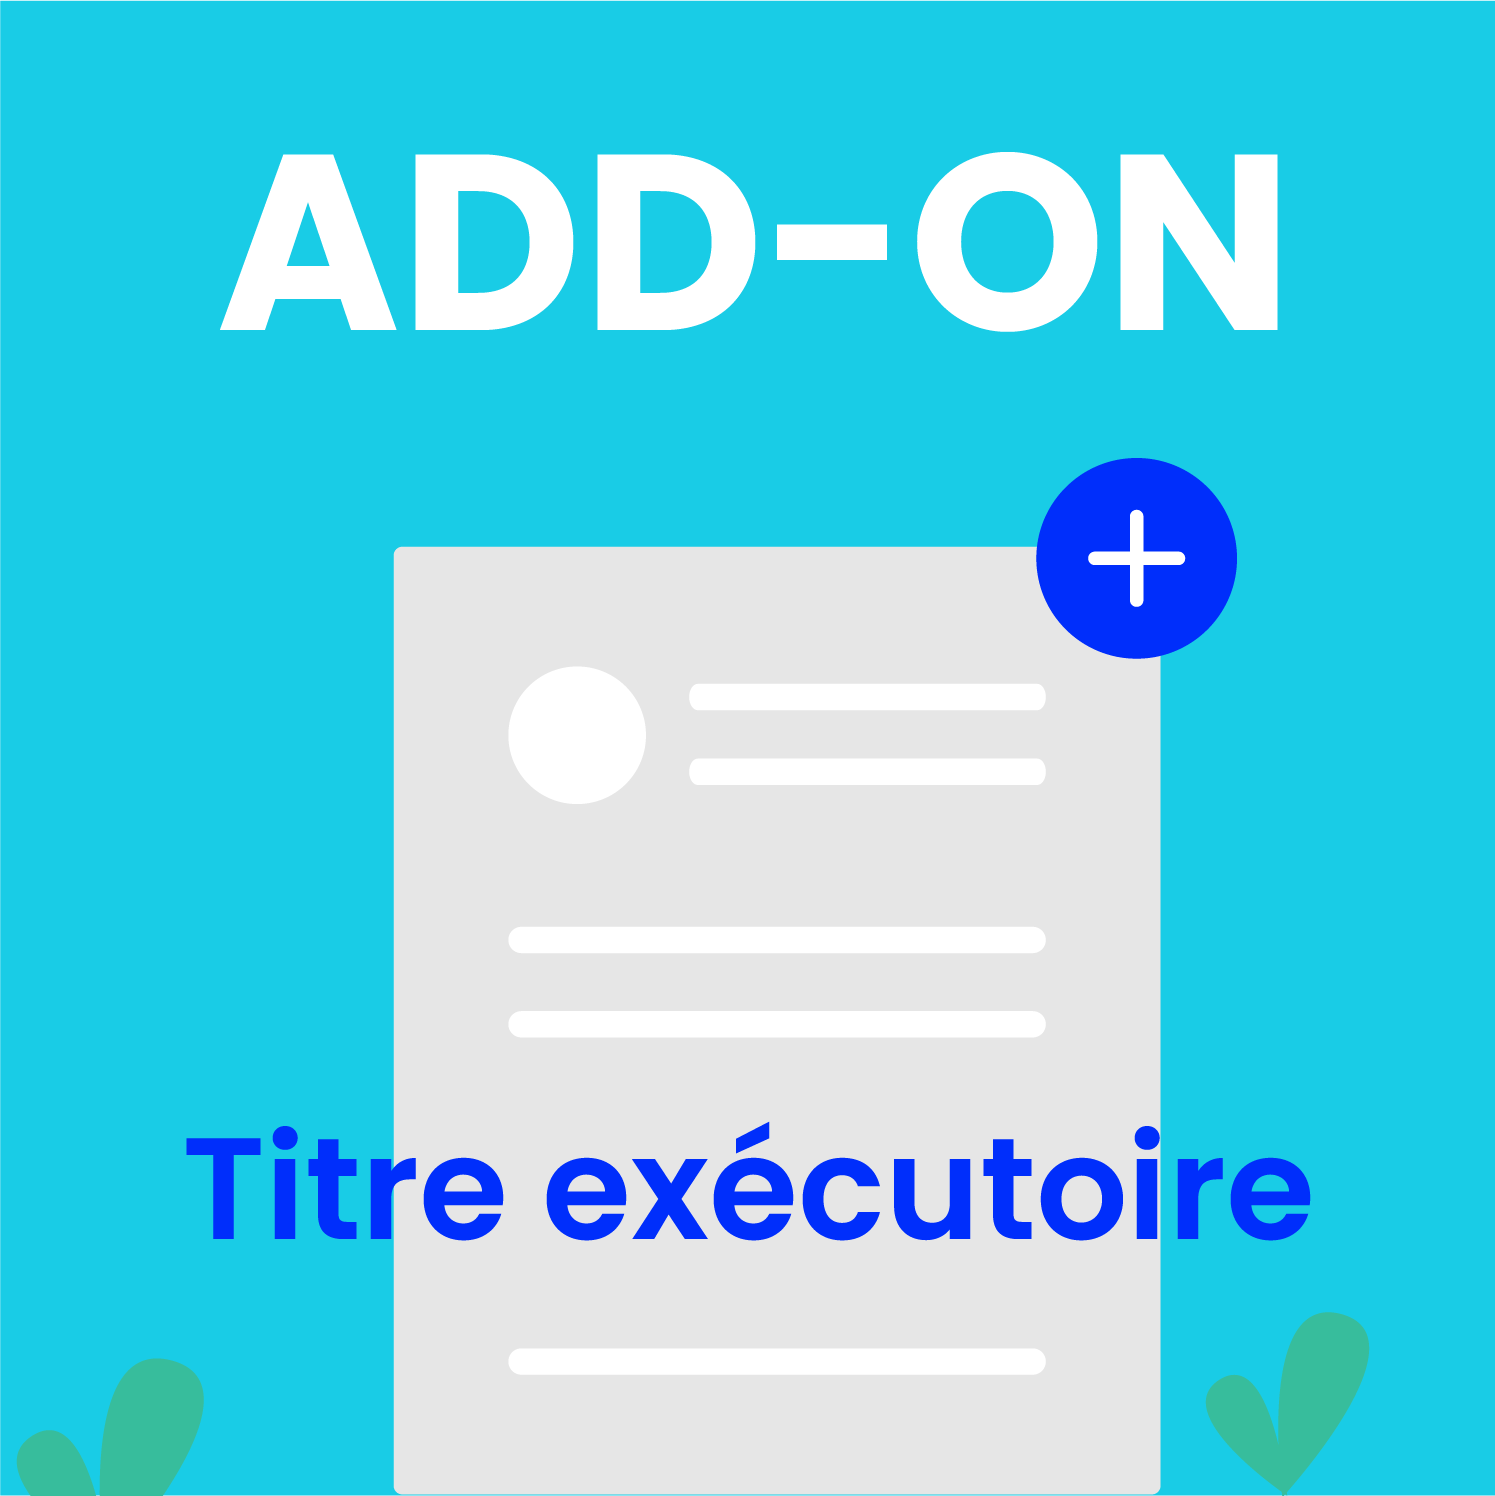 add-on titre executoire